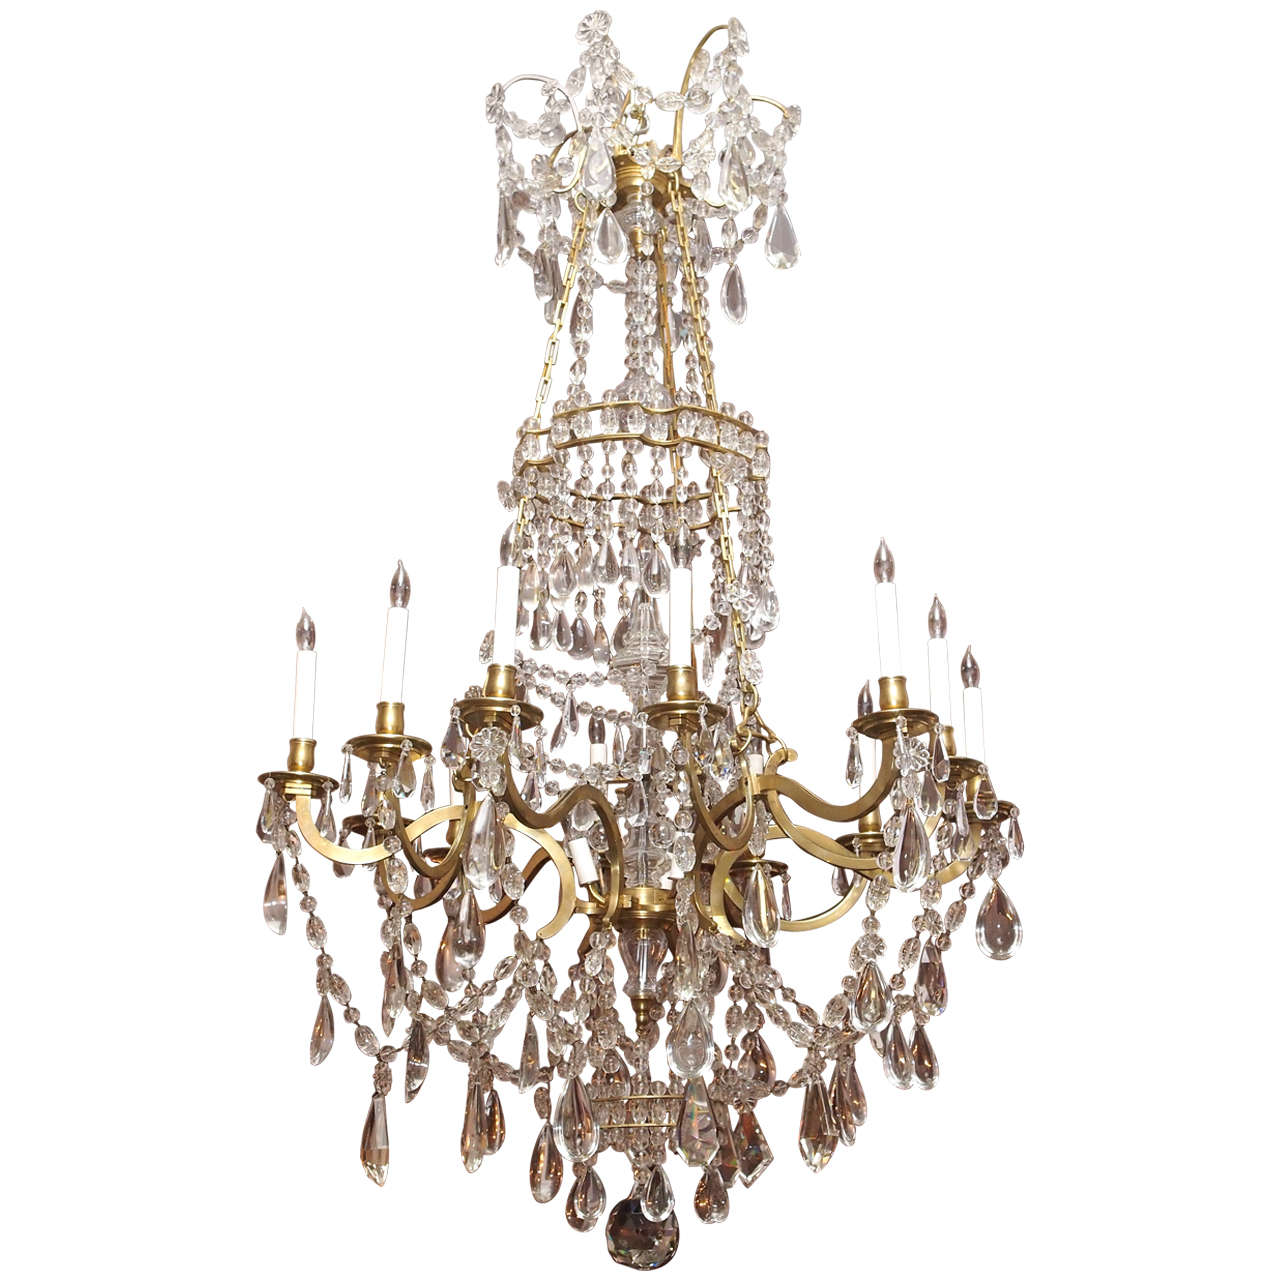 Antique French Grand Size Louis XVI Bronze D'ore and Baccarat Chandelier 1 - Antique French Grand Size Louis XVI Bronze D'ore And Baccarat